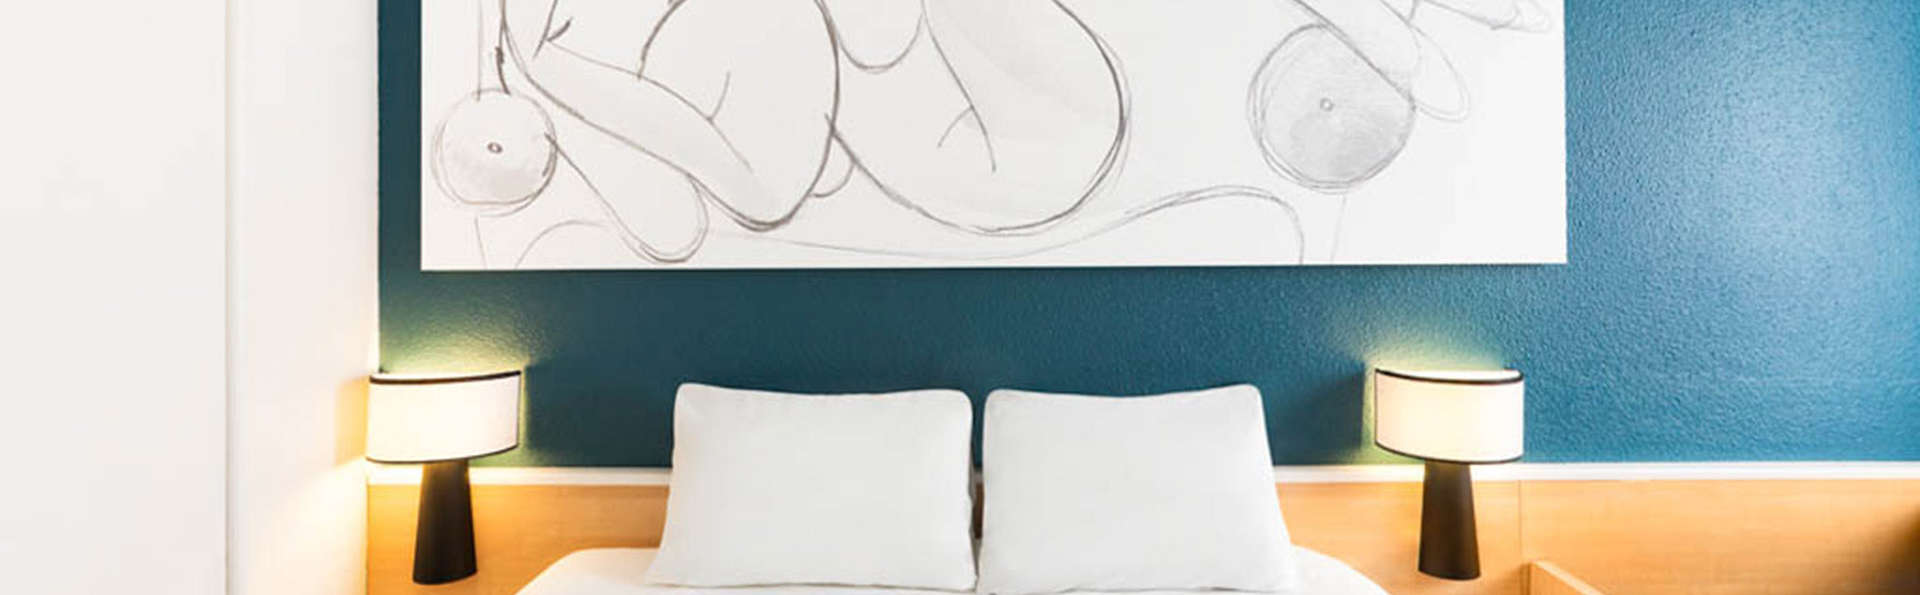 Ibis Bordeaux Merignac - EDIT_ROOM_01.jpg